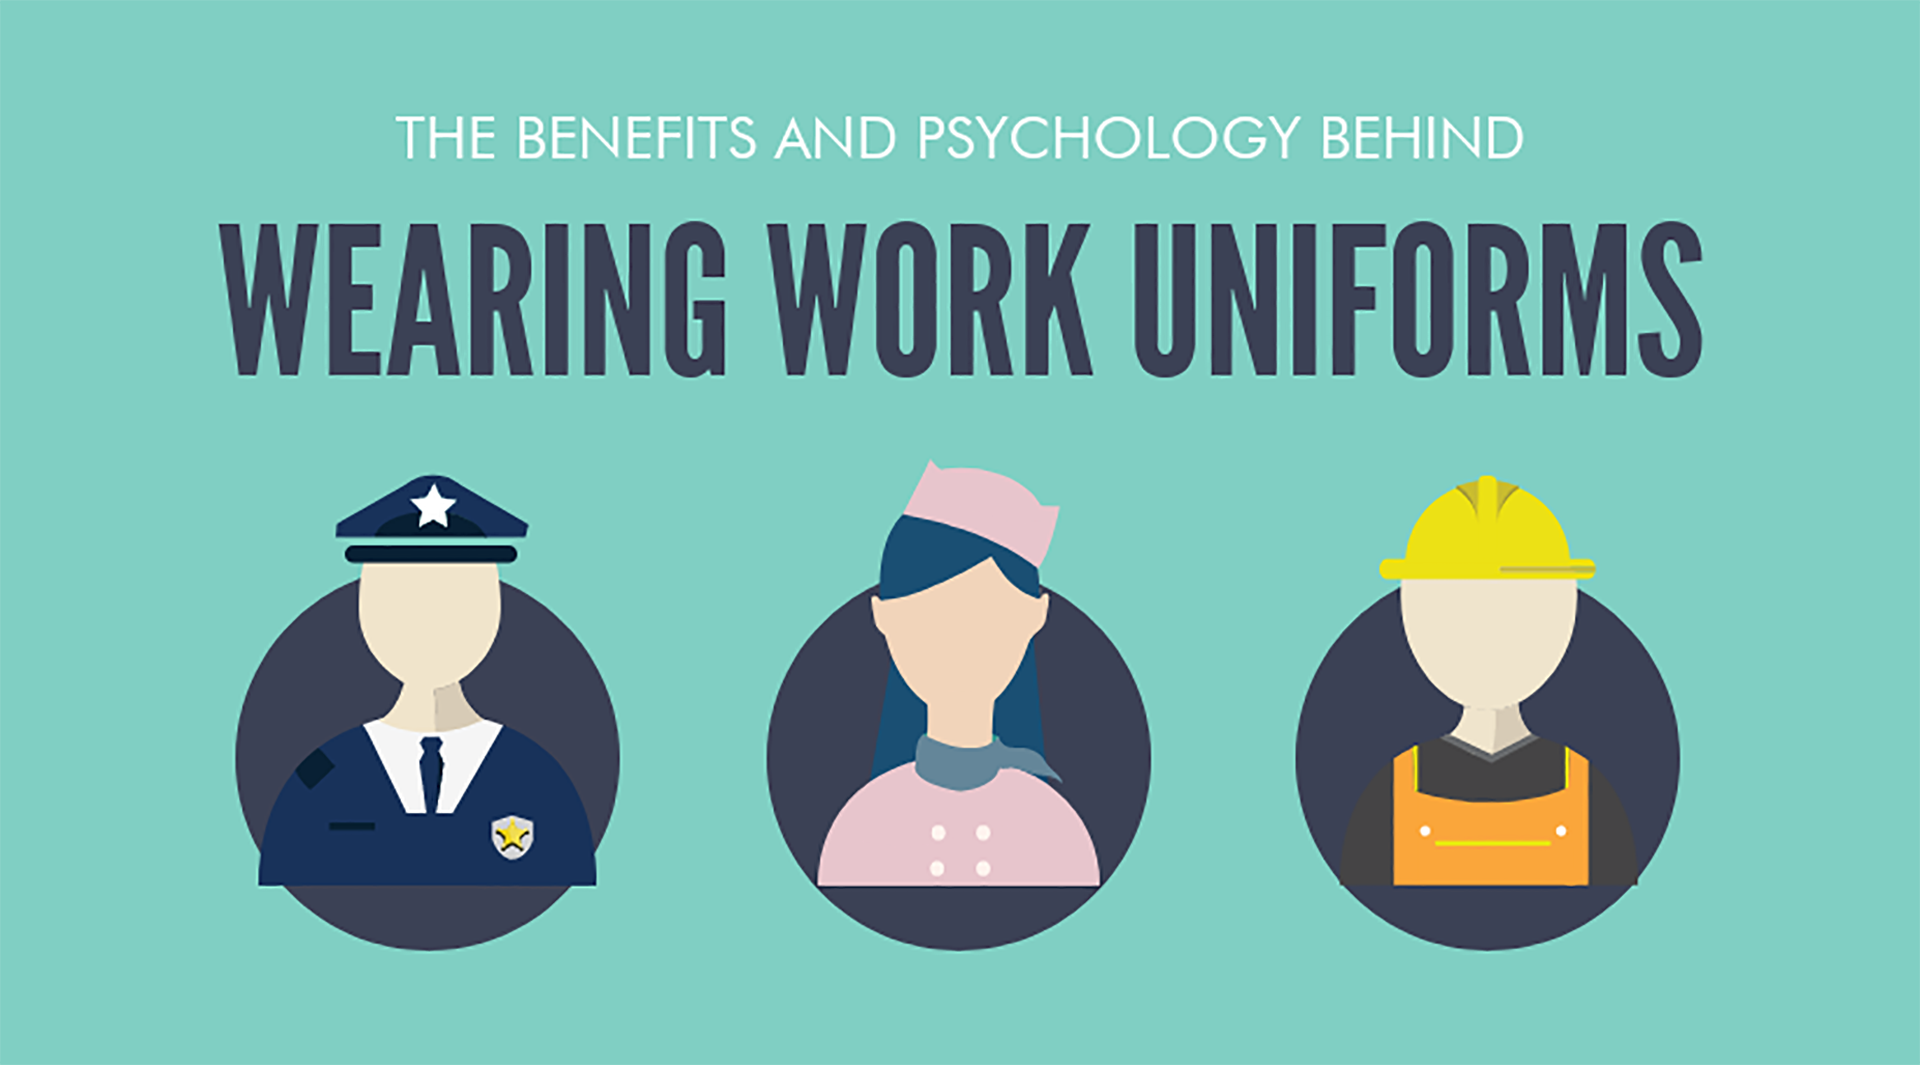 The Benefits and Psychology Behind Wearing Work Uniforms